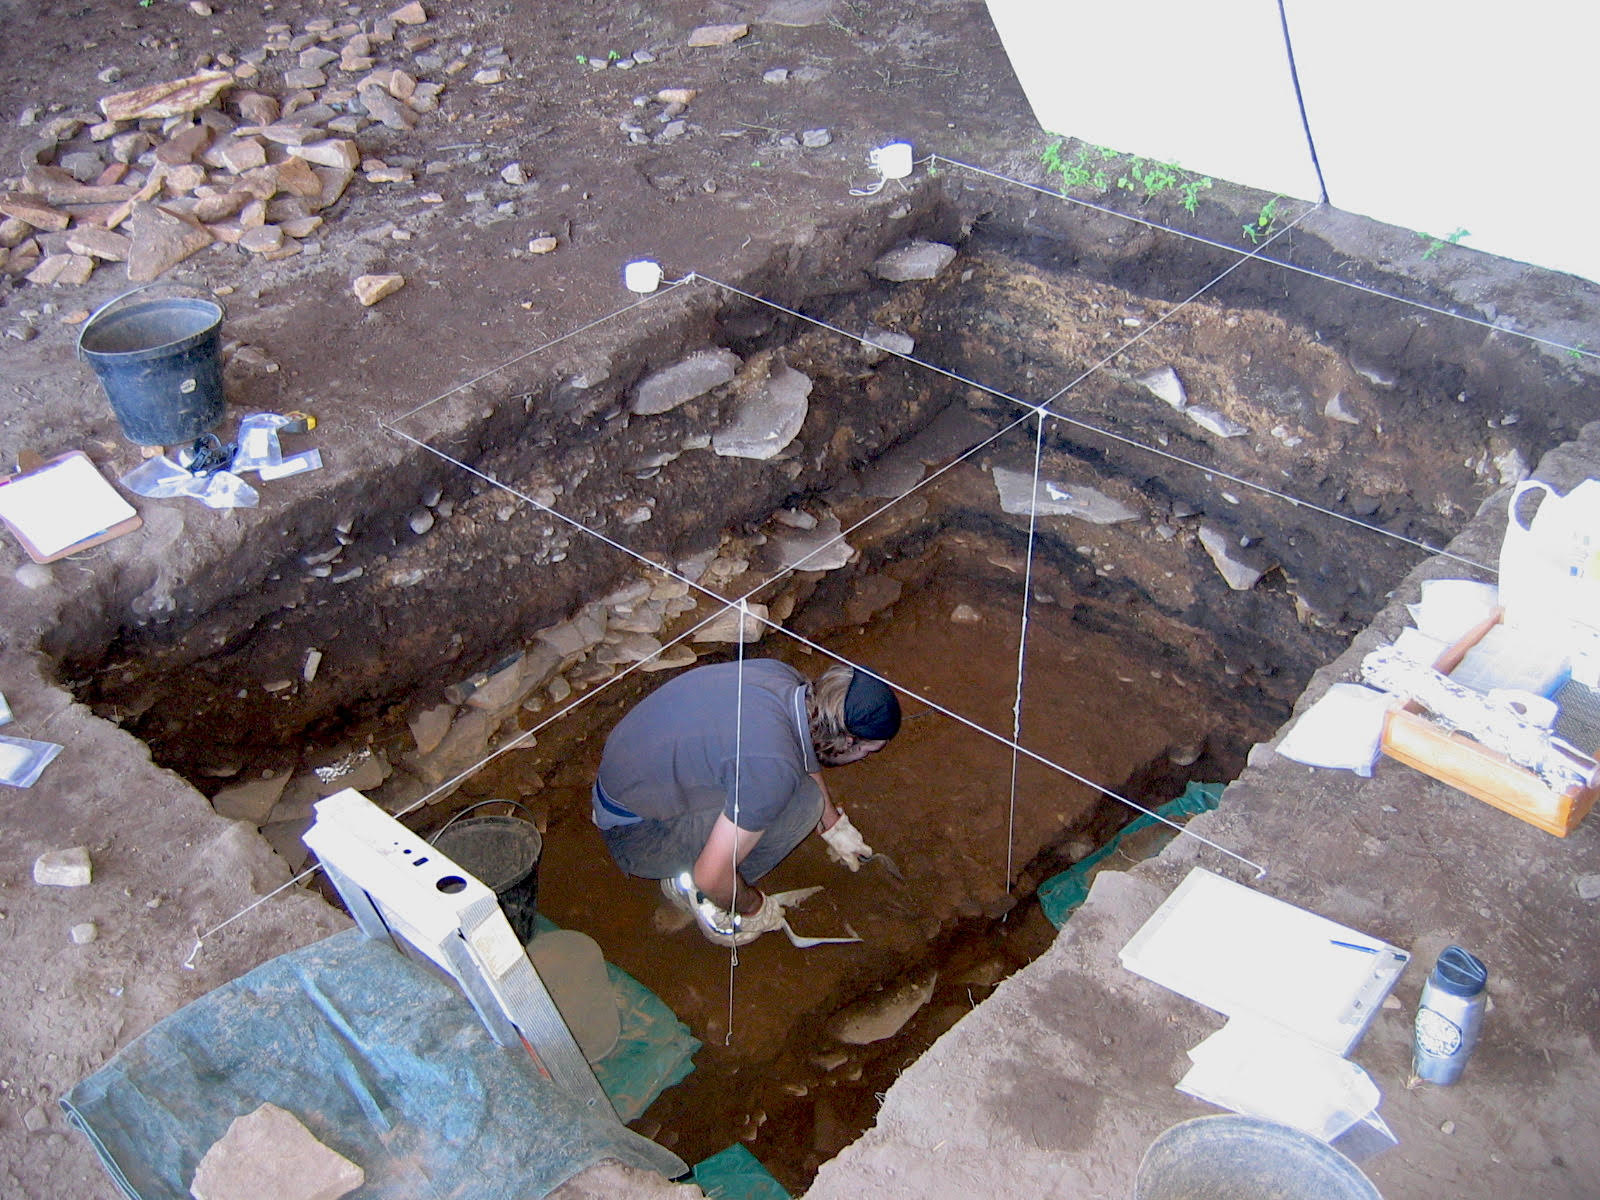 An archeologist crouches in a rectangular pit digging in the dirt